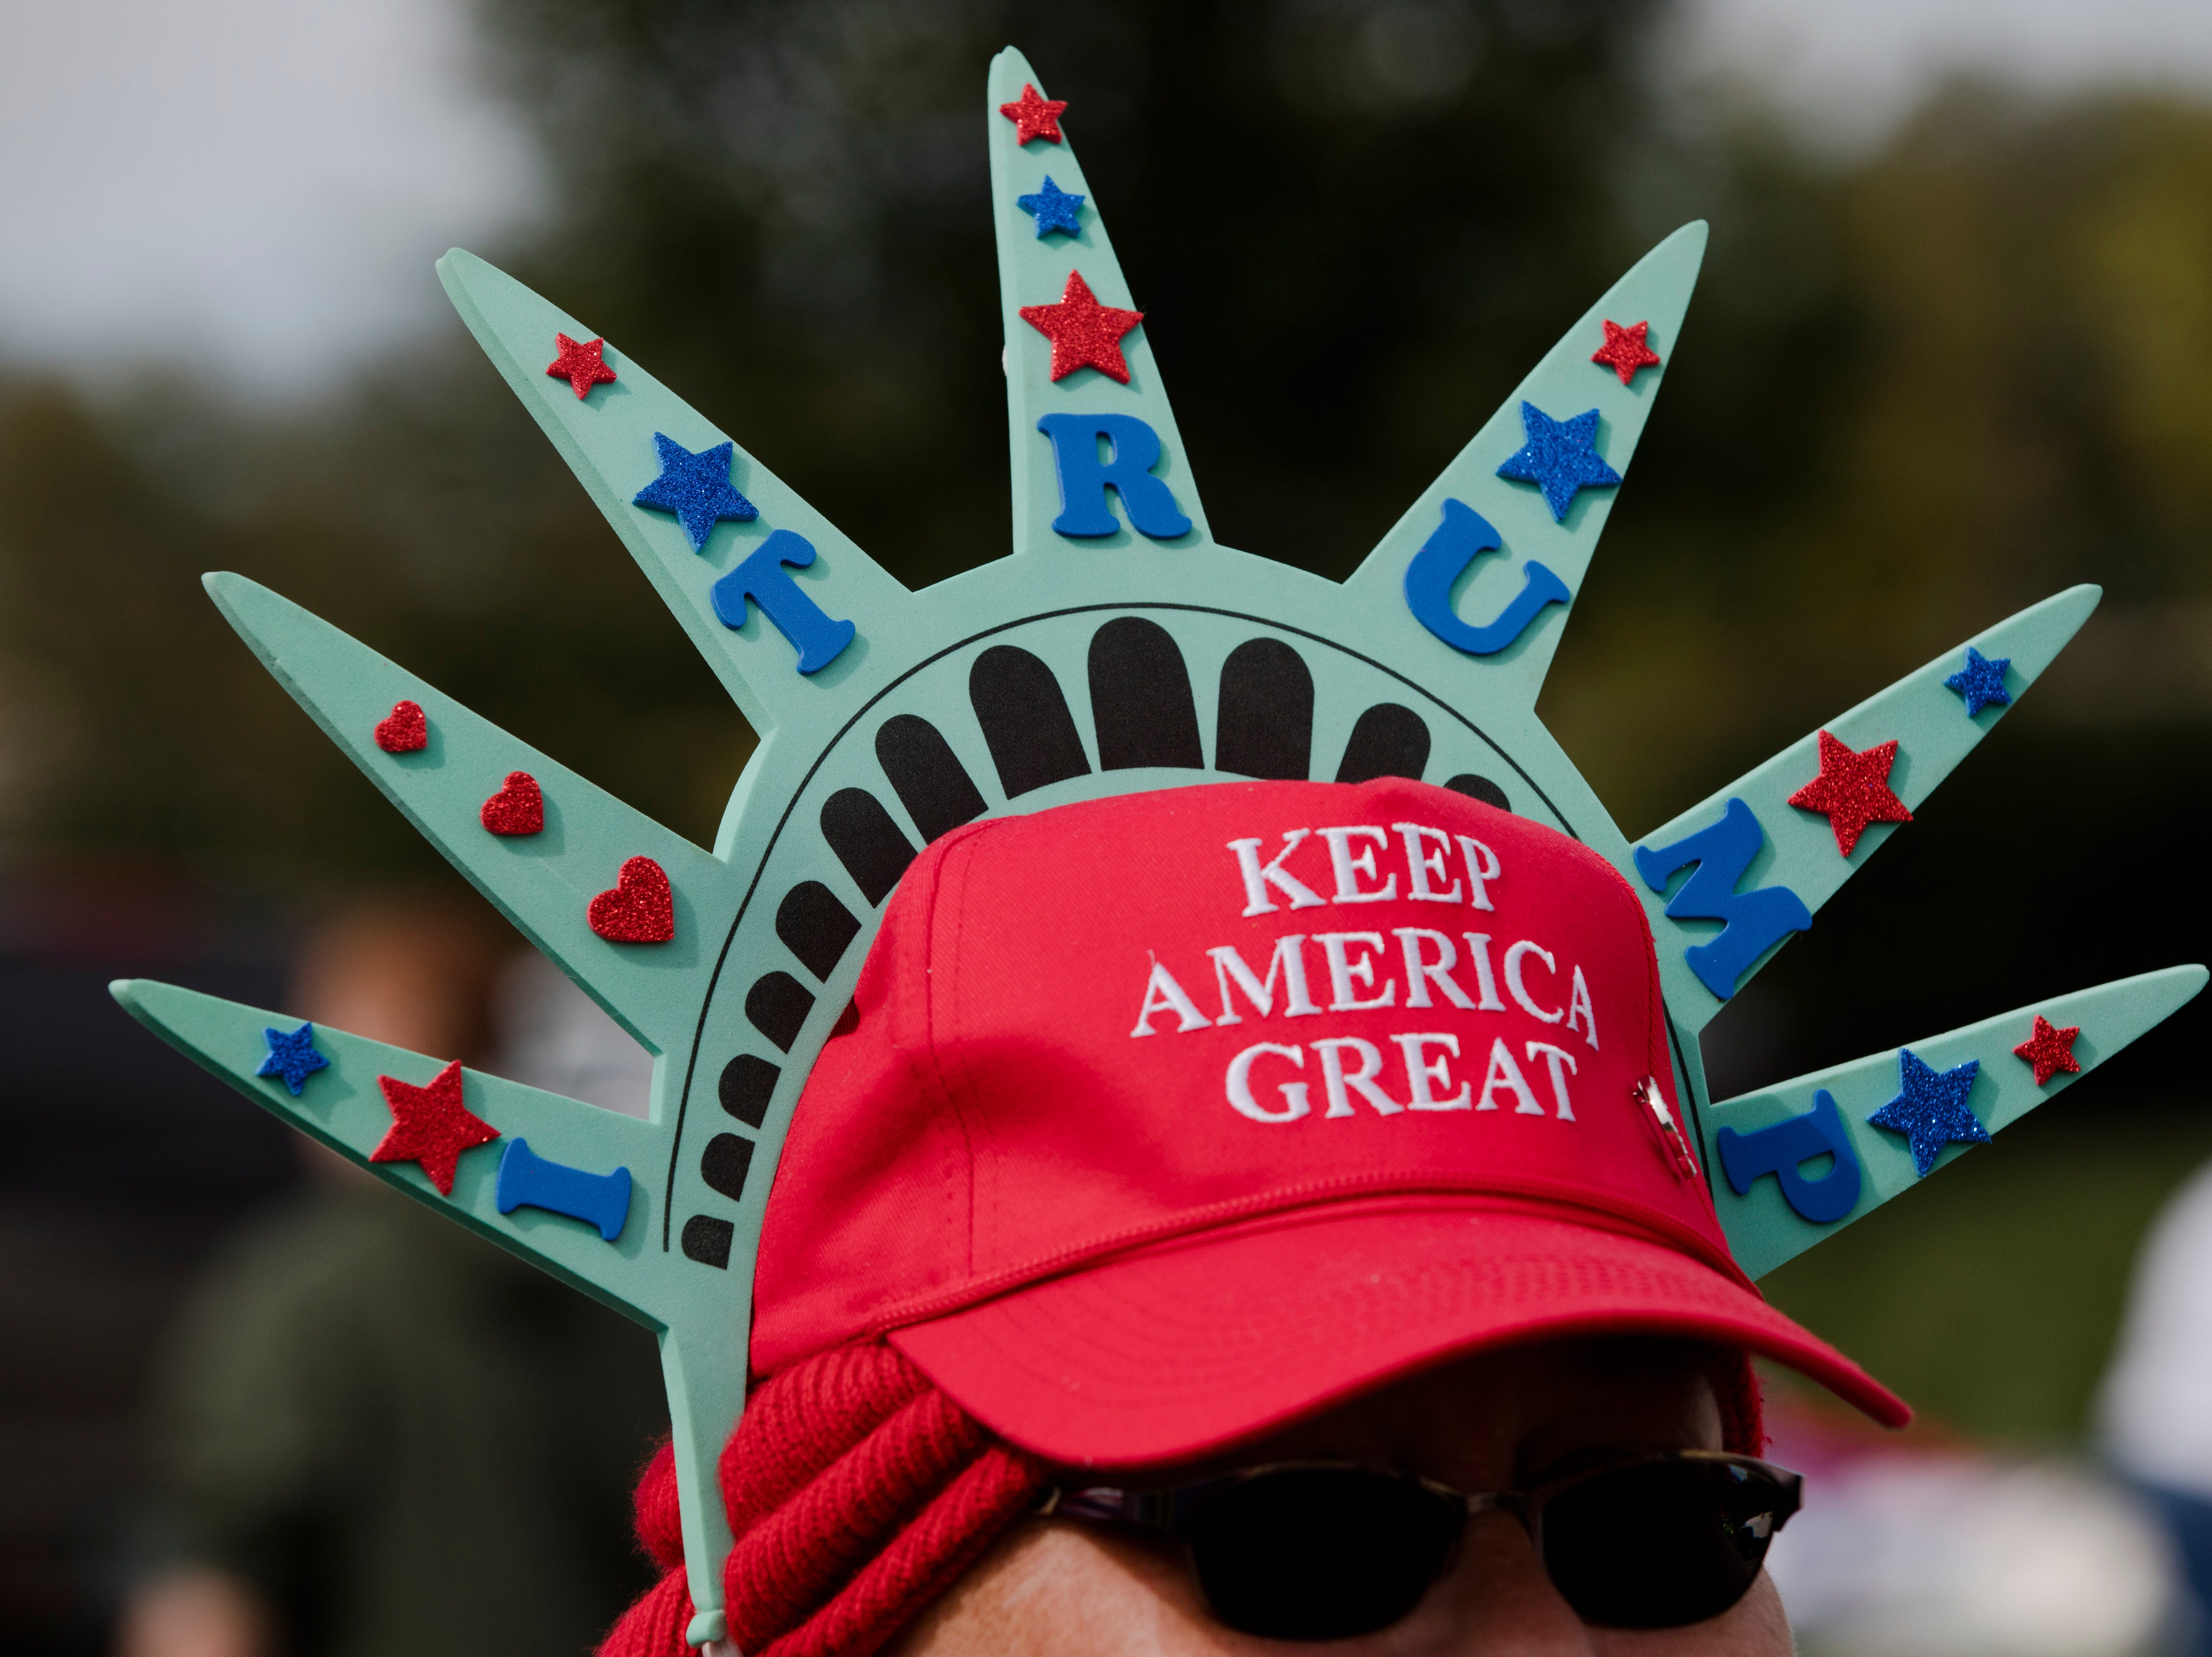 Toni Eaton dressed as lady liberty waits in line for President Donald J. Trump's Make America Great Again Rally in Lebanon, Ohio, on Friday, Oct. 12, 2018.